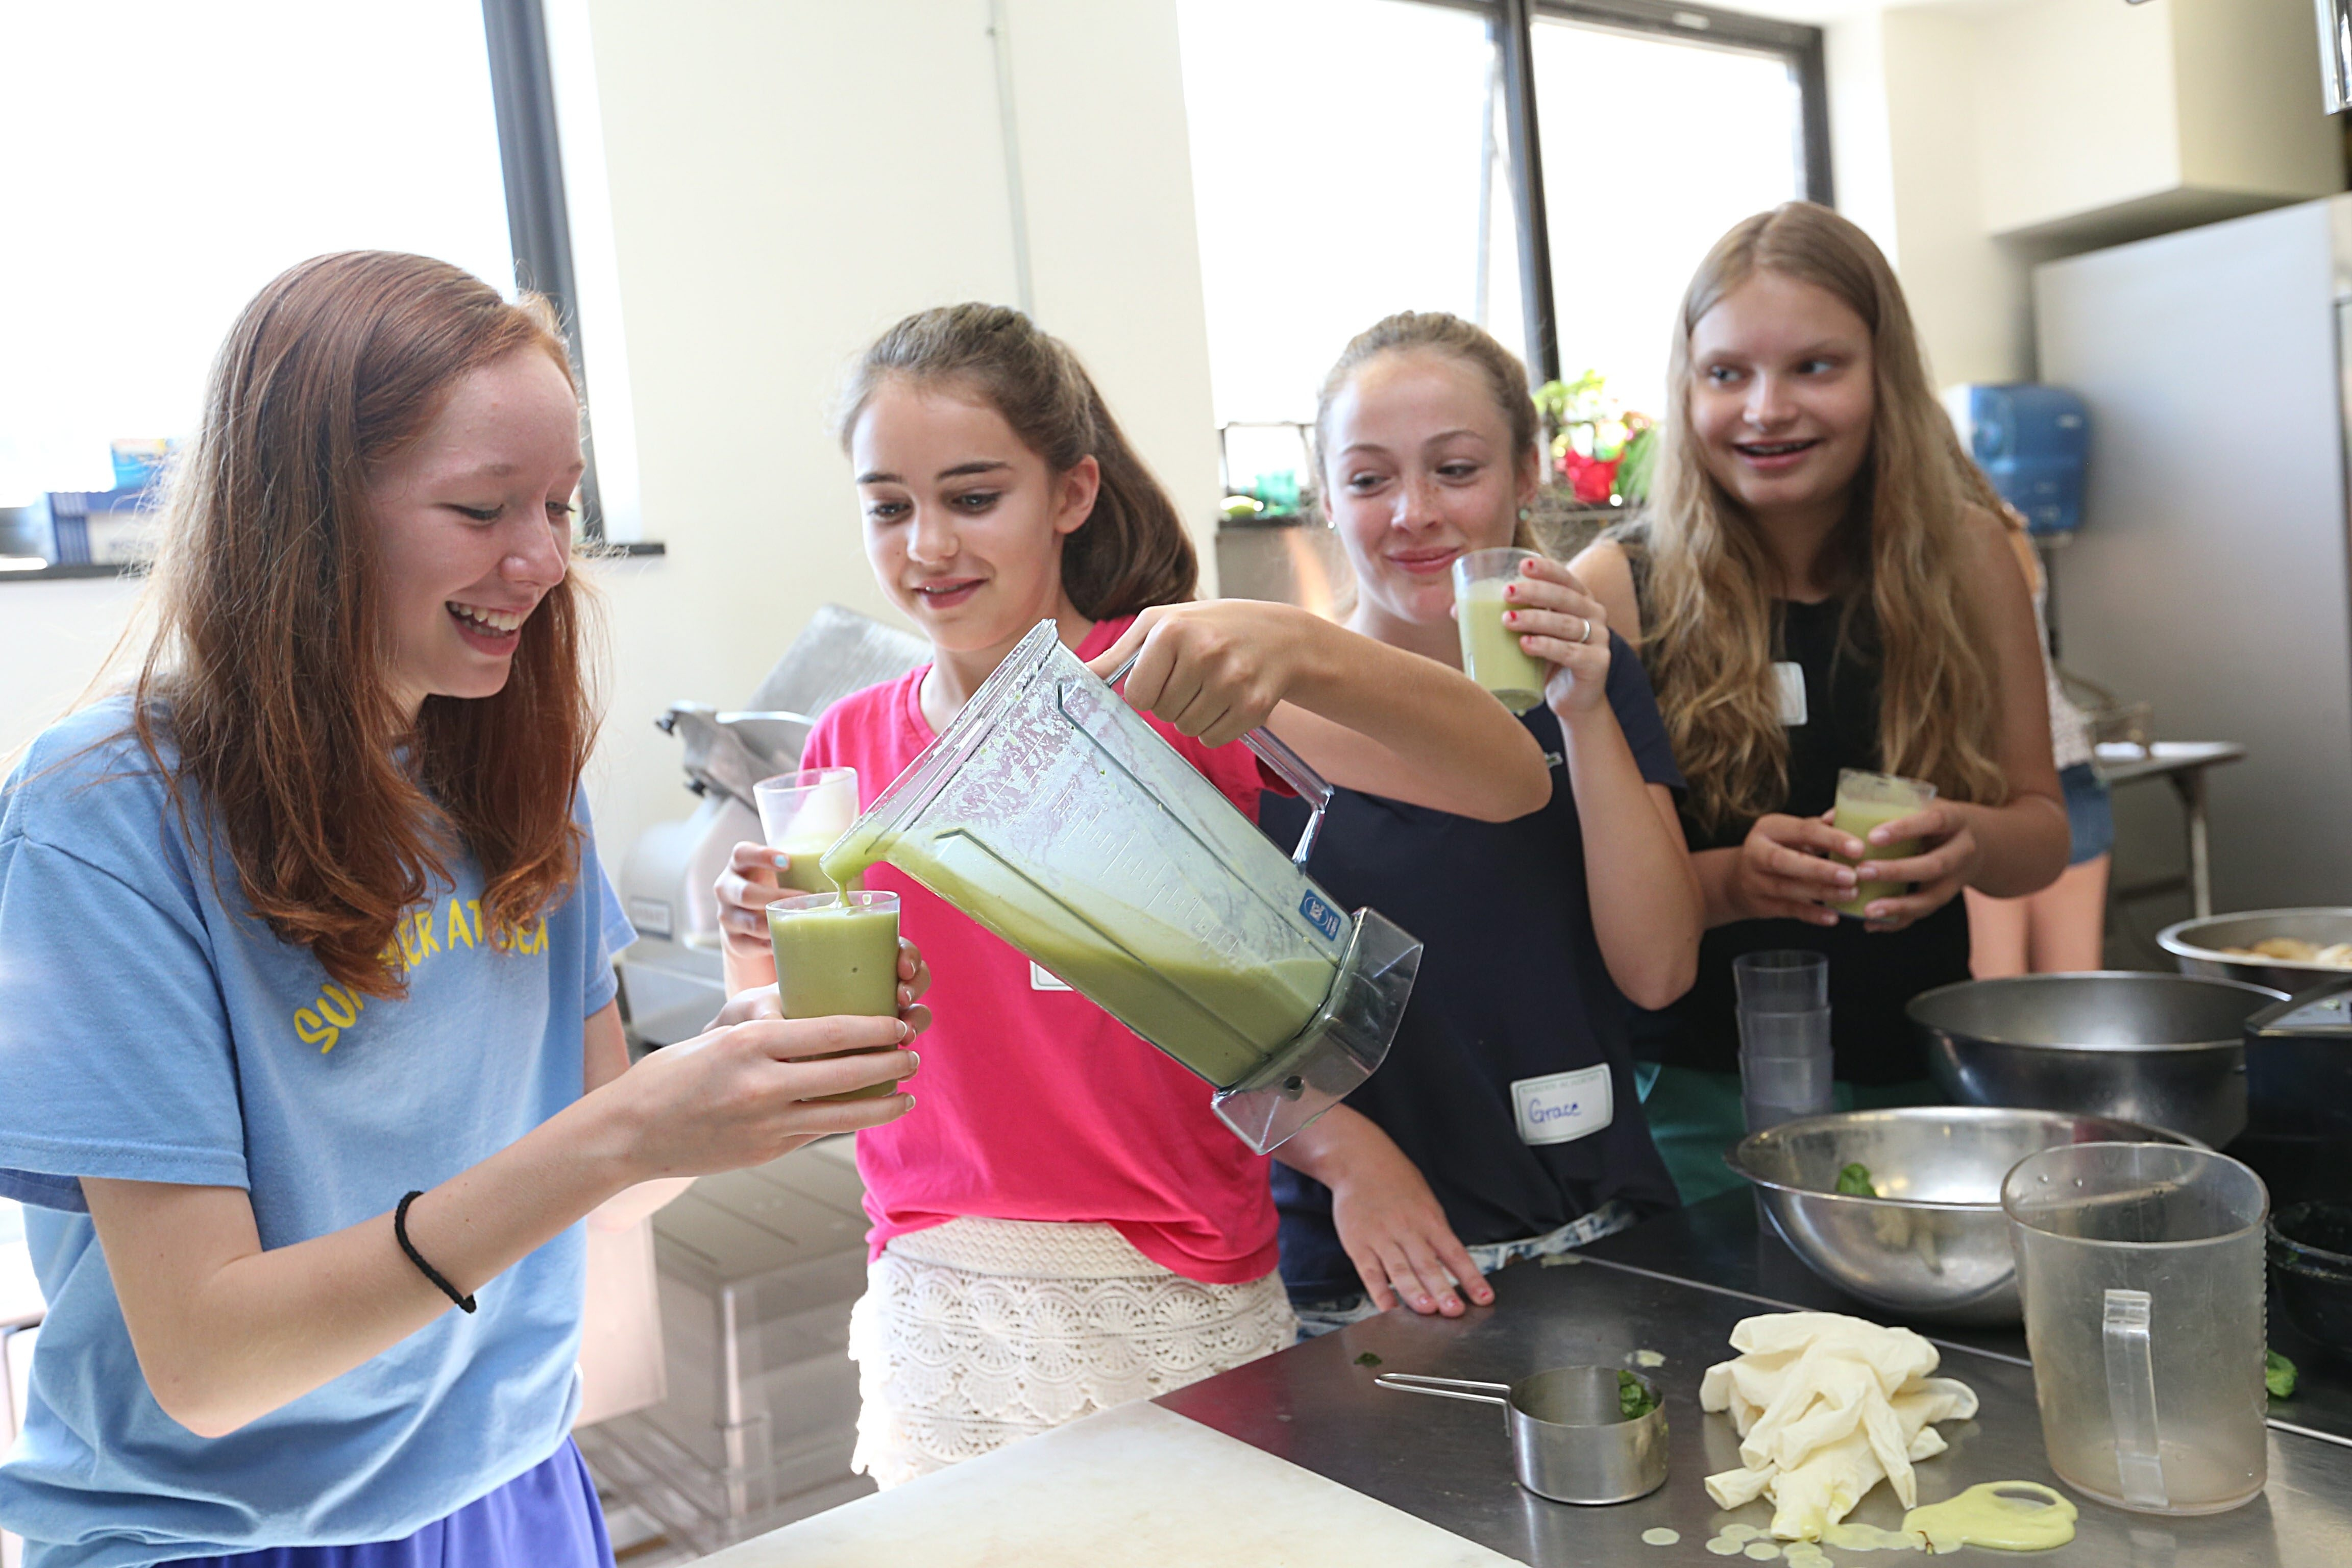 Tasting a Going Green smoothie that they made during a cooking class are, from left, eighth-graders Mary Liz Beyer, Anna Gioia, Grace McHale and Emily Desmond. The smoothie includes spinach, pineapple, banana and green grapes.